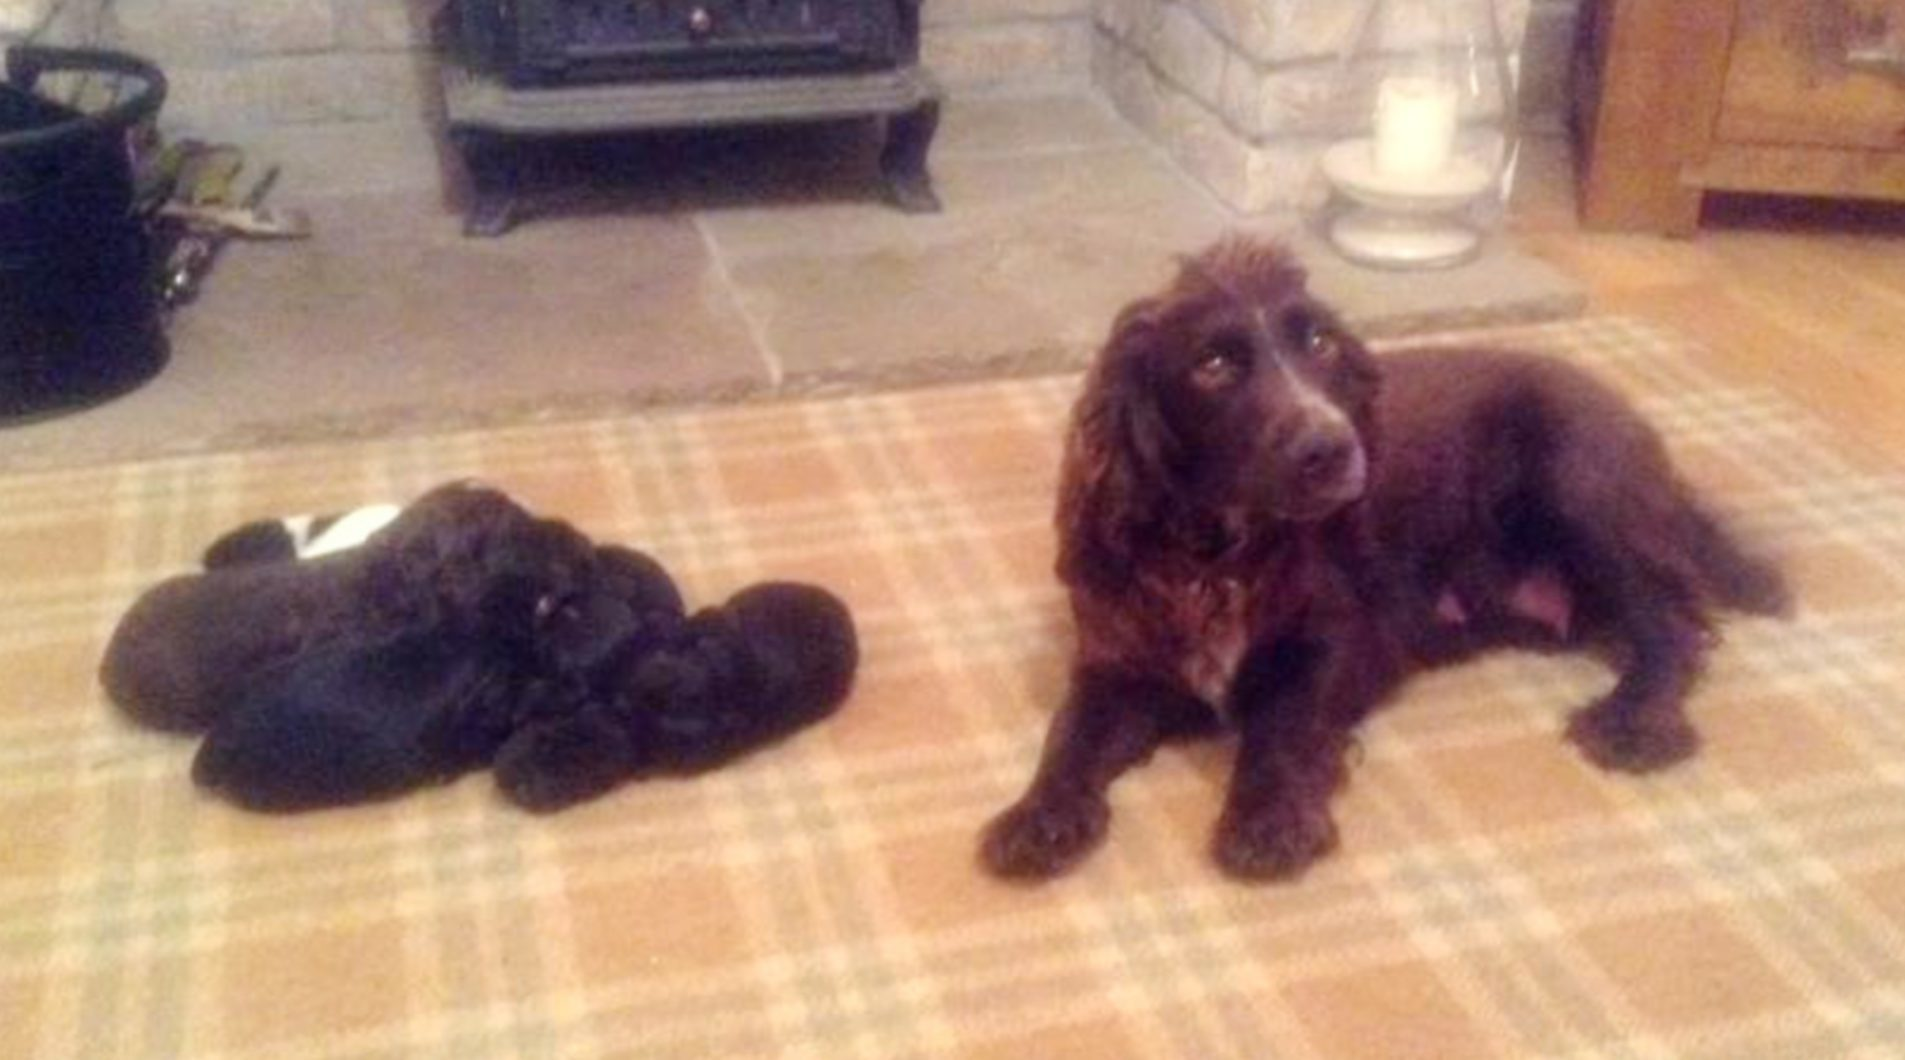 The cocker spaniel and her puppies.